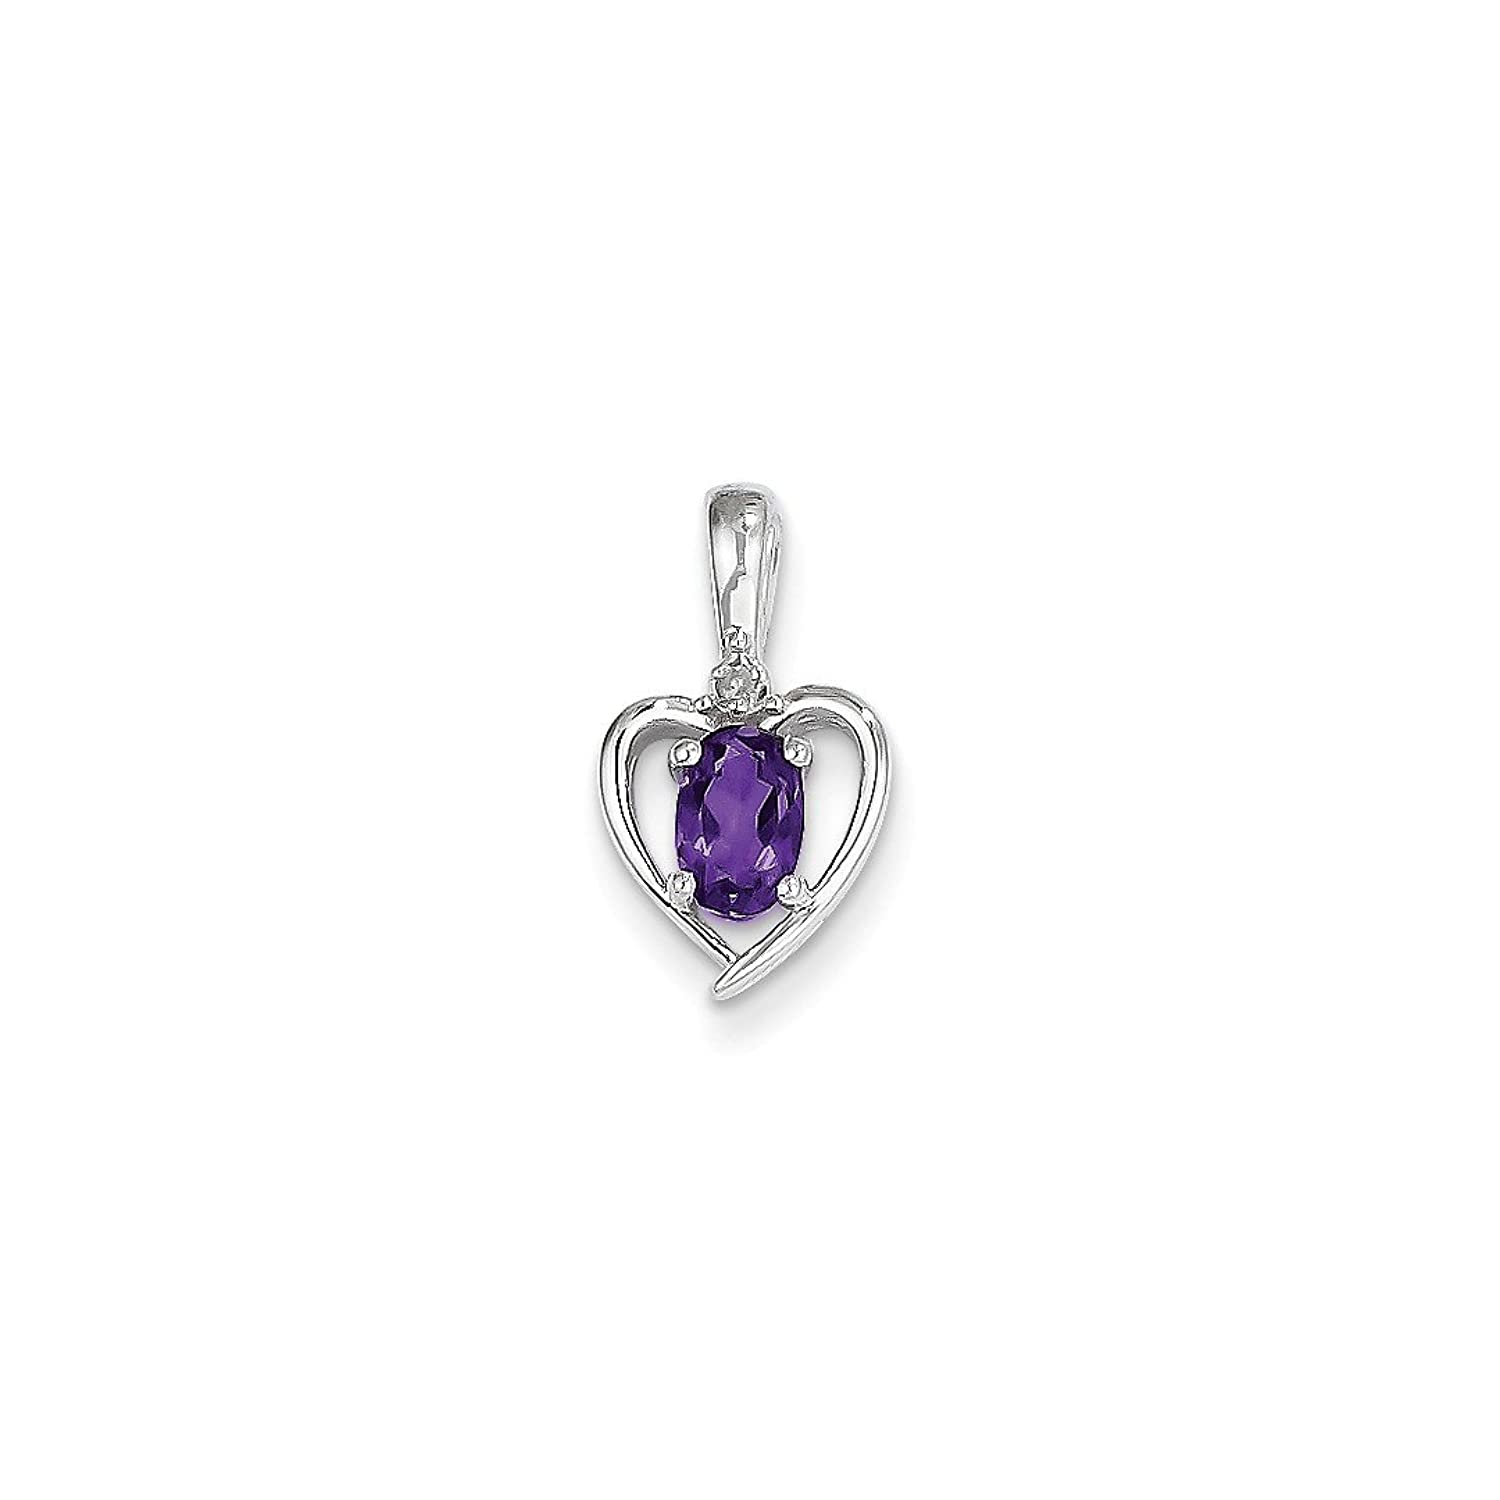 ICE CARATS 14k White Gold Purple Amethyst Diamond Pendant Charm Necklace Gemstone Birthstone February Set Style Fine Jewelry Ideal Mothers Day Gifts For Mom Women Gift Set From Heart